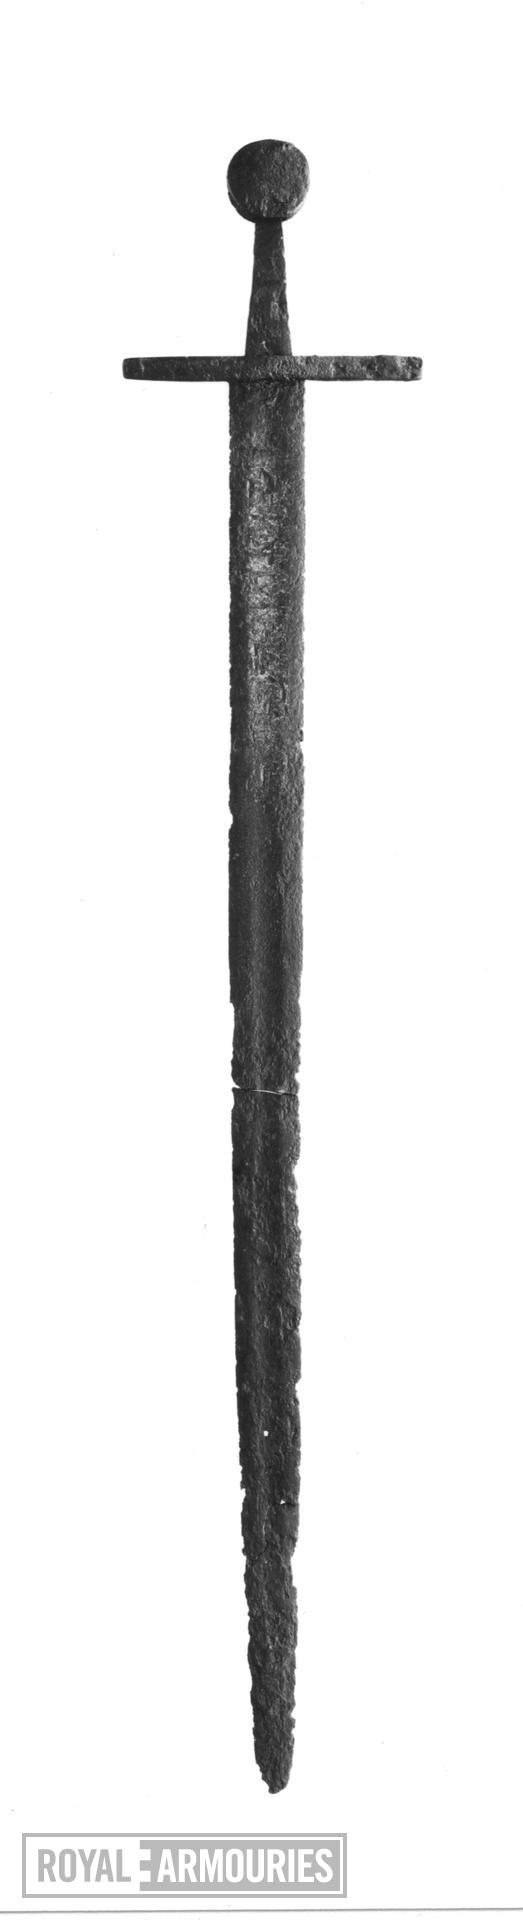 Sword Sword, wth possible '+ INME FECIT +' inscription.